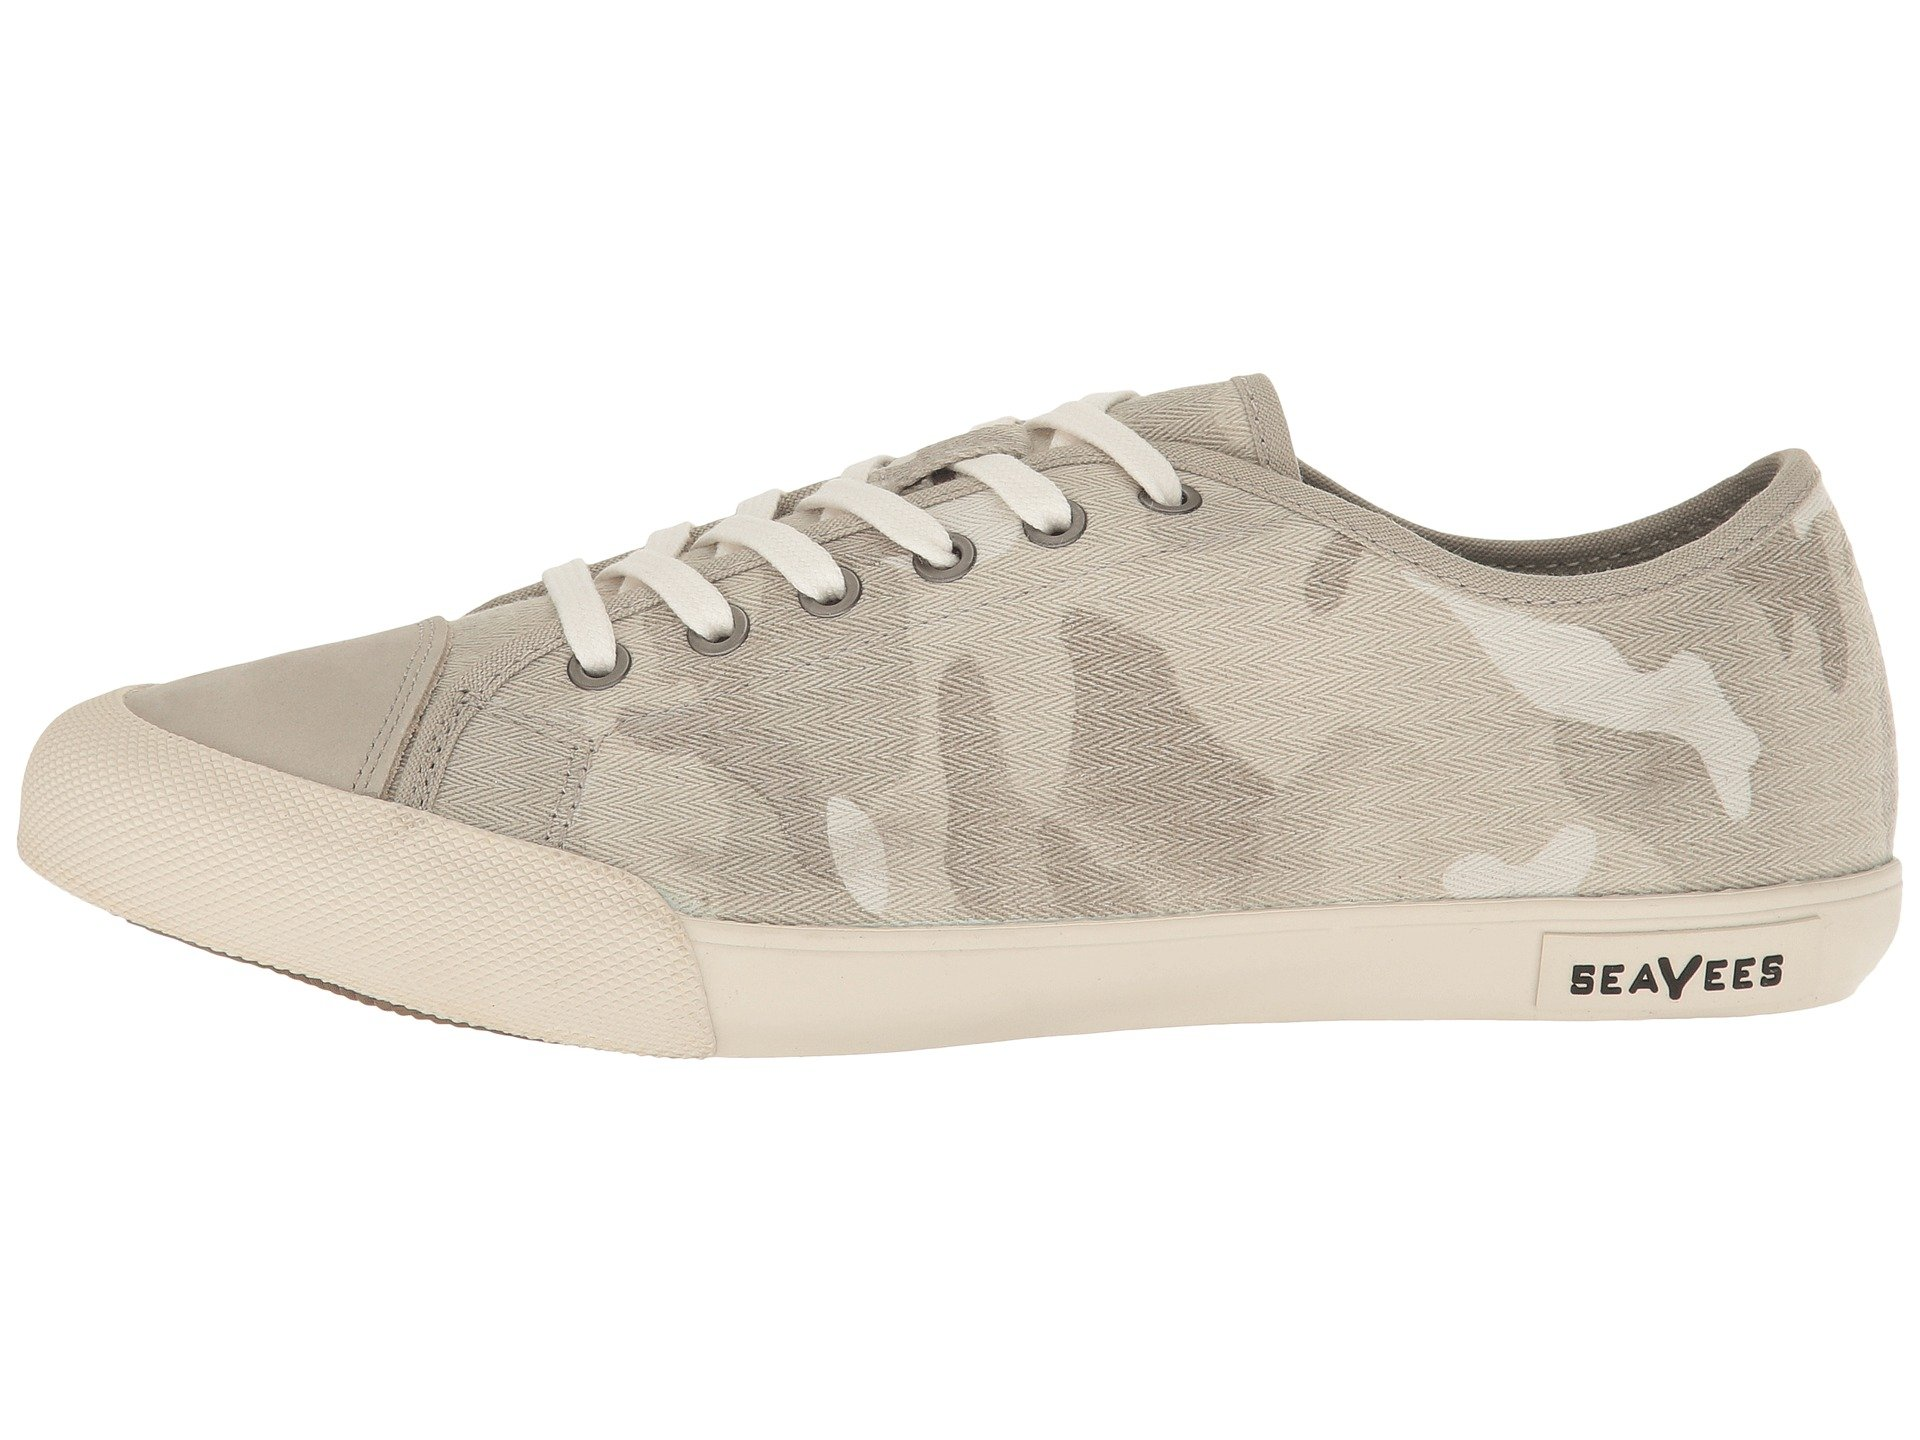 08/61 Army Issue Oasis SeaVees hg9ITcx3L